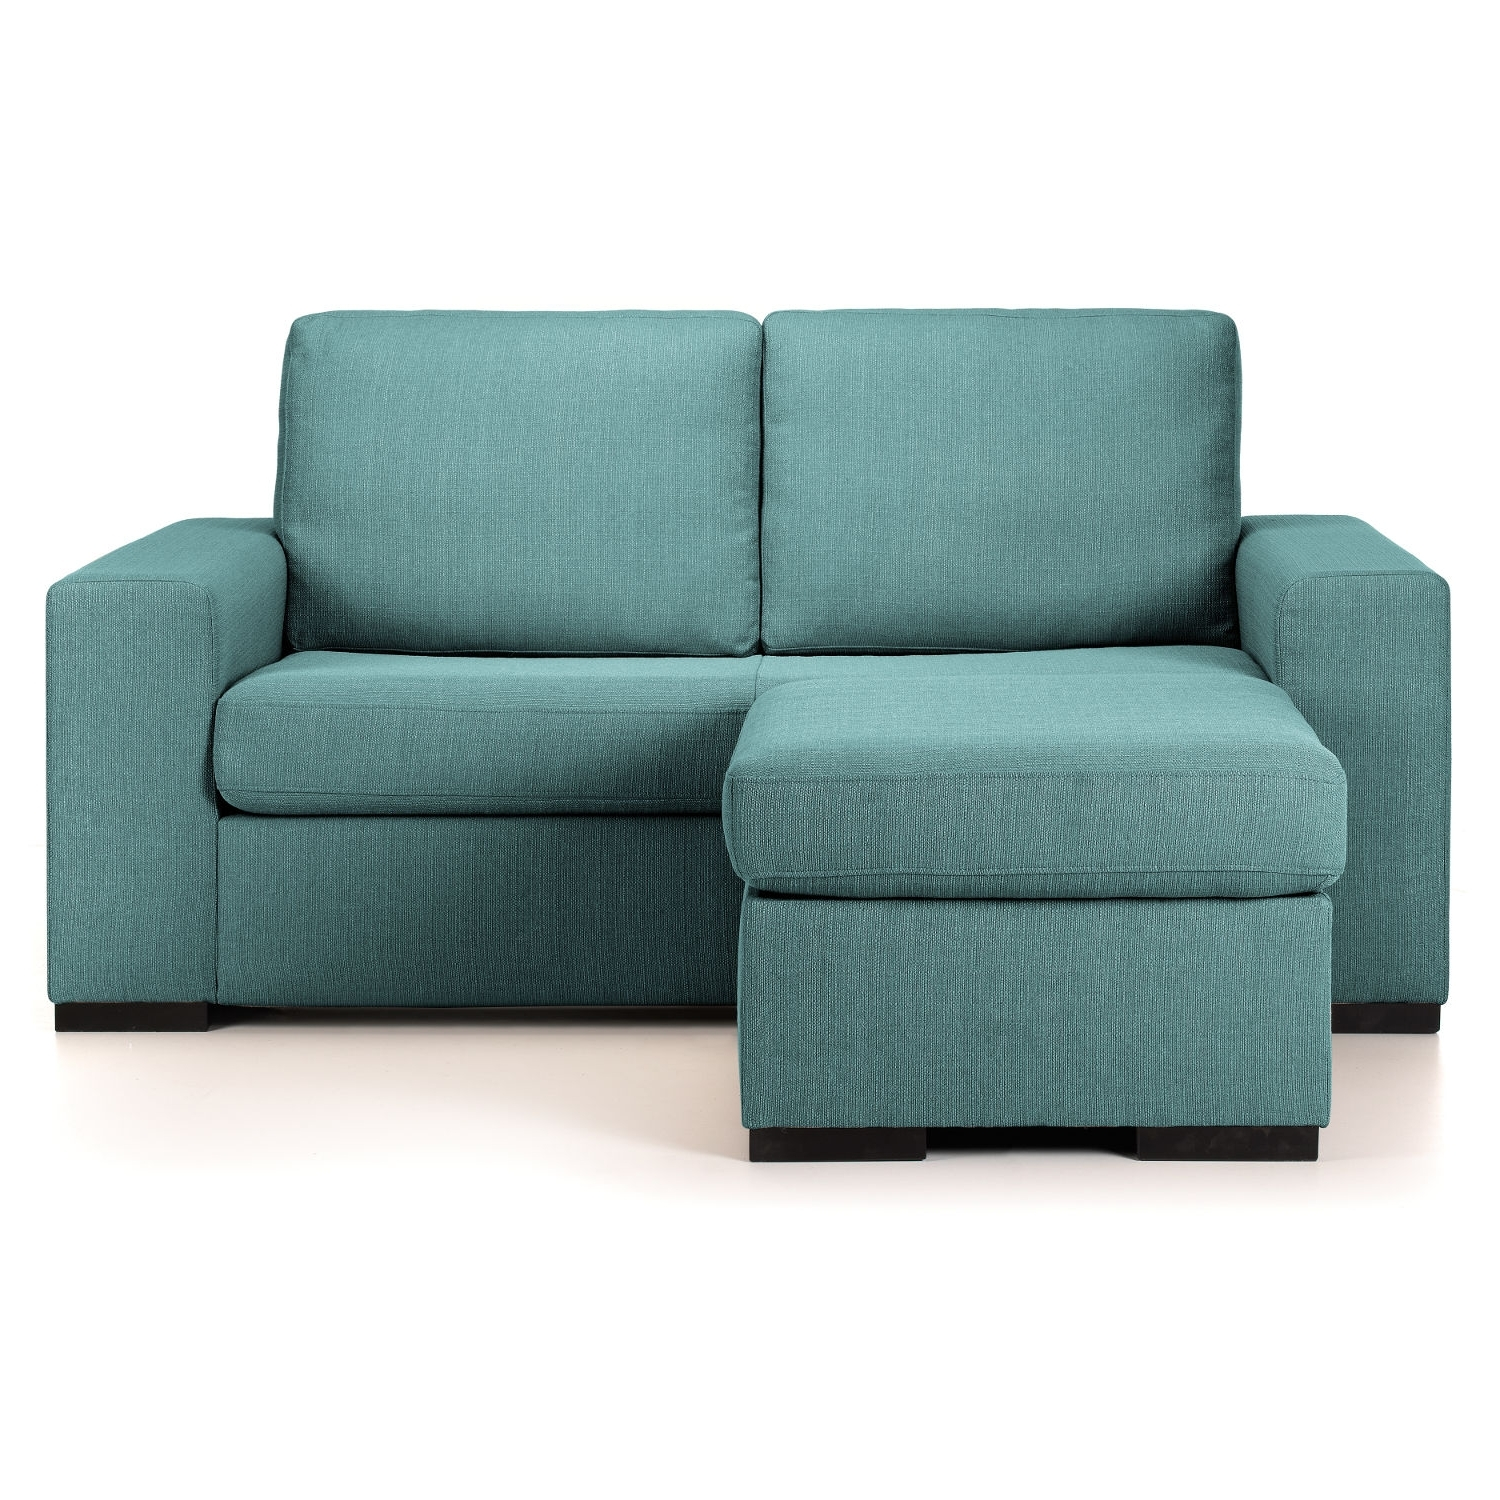 Chaise Sofa Beds Throughout Fashionable Frances 4 In 1 Corner Chaise Sofa Bed With Storage Footstool (View 6 of 15)